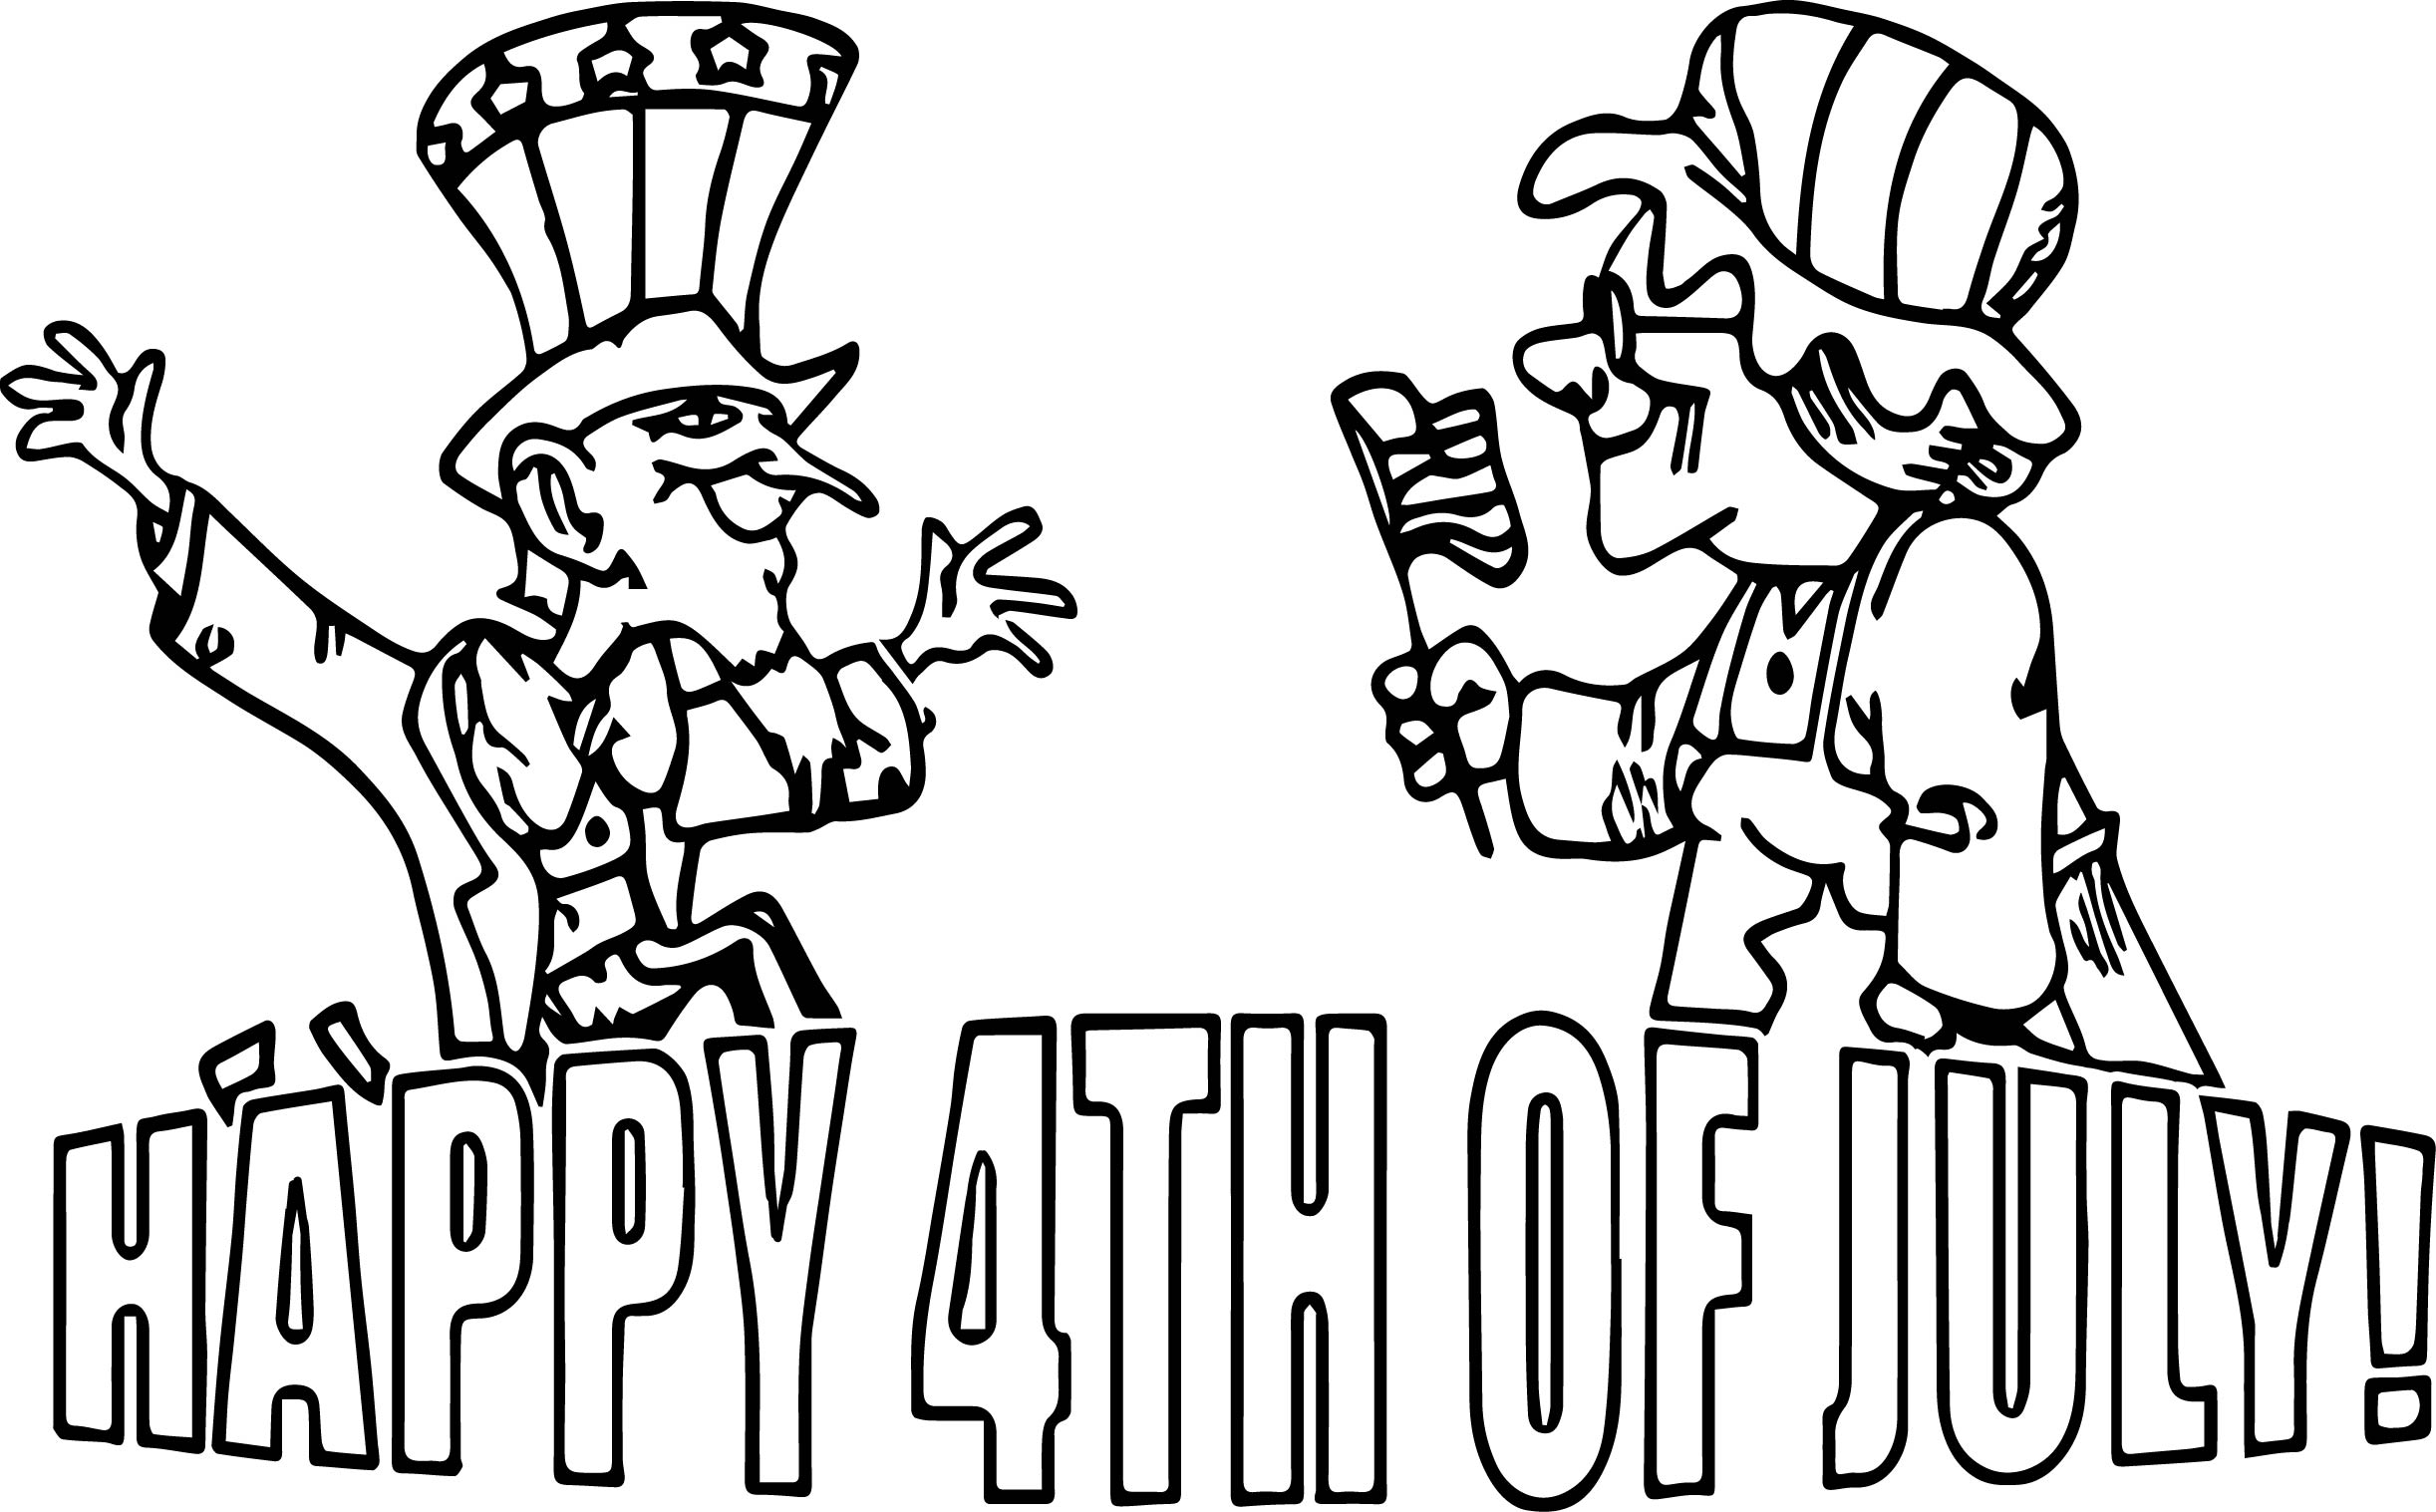 Celebrating The 4th July Old Couple Coloring Page